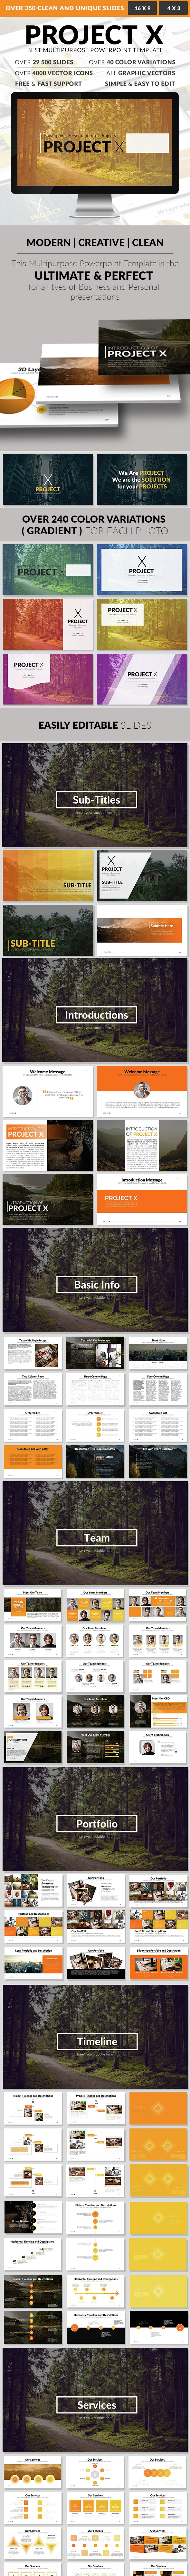 Project X – Multipurpose PowerPoint Template - PowerPoint Templates Presentation Templates